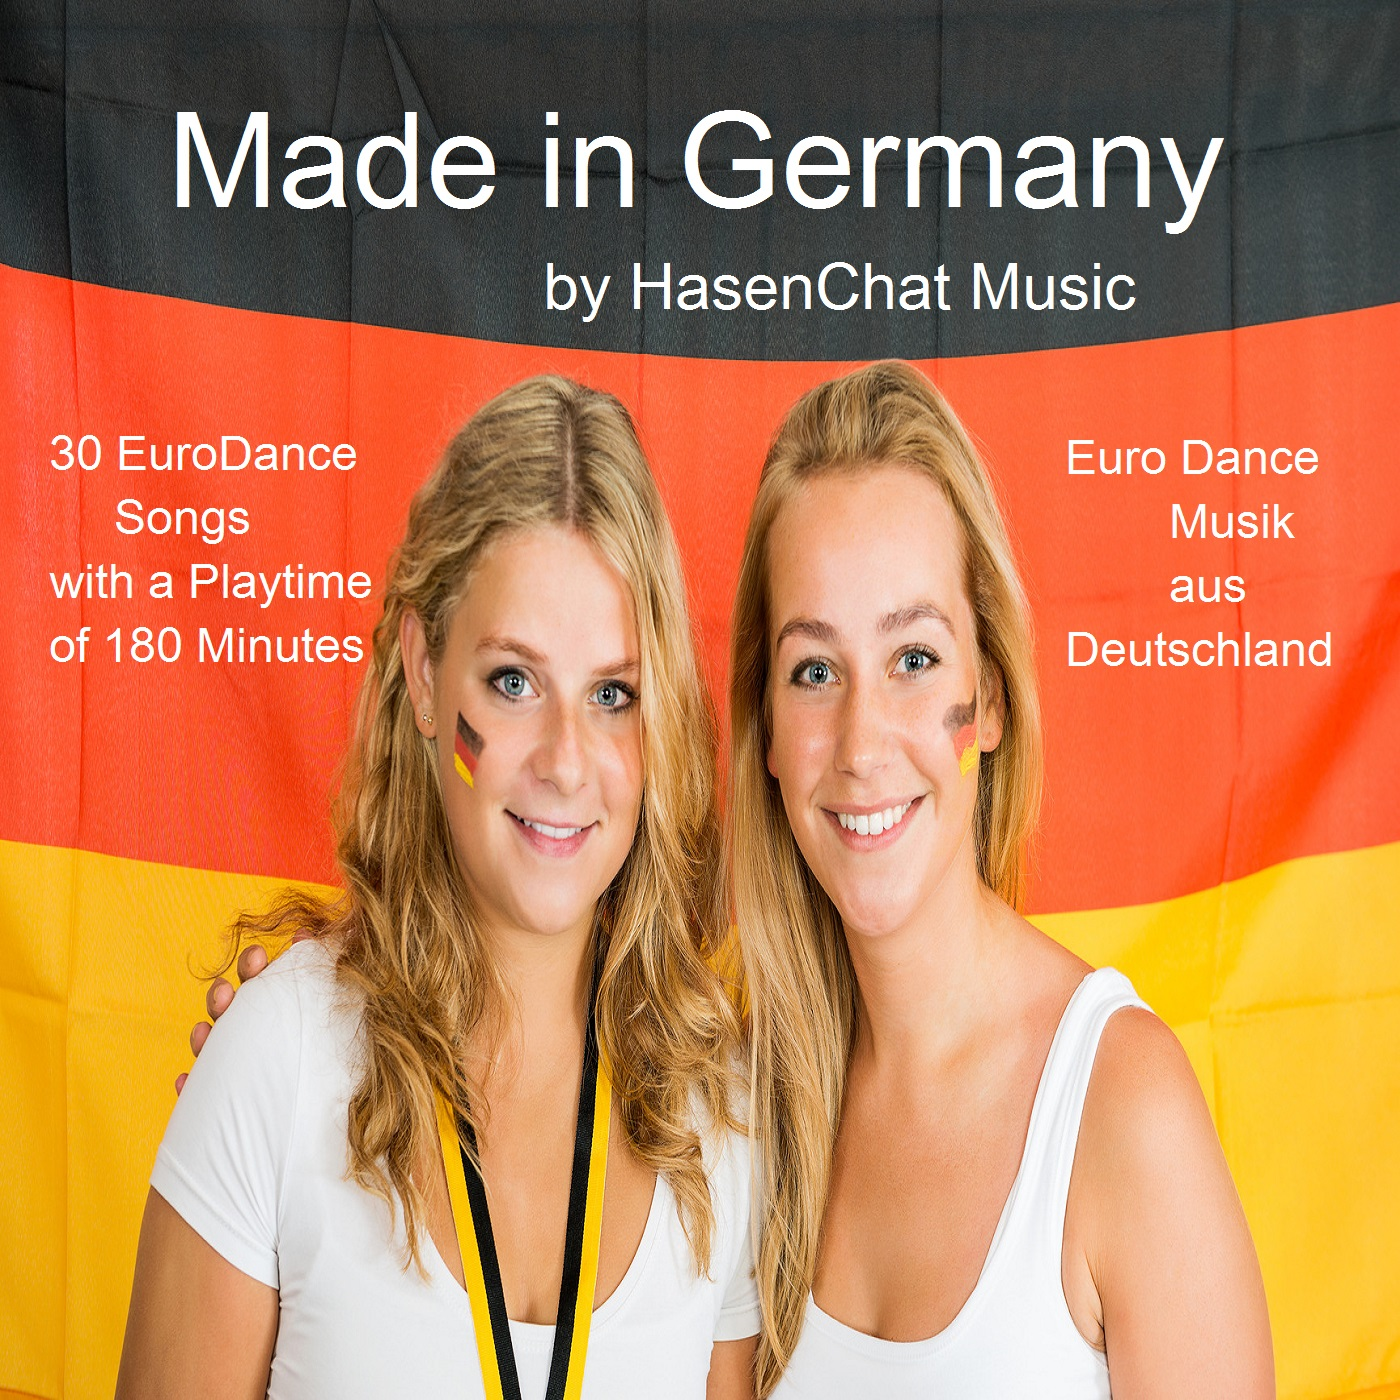 HasenChat Music - Made in Germany